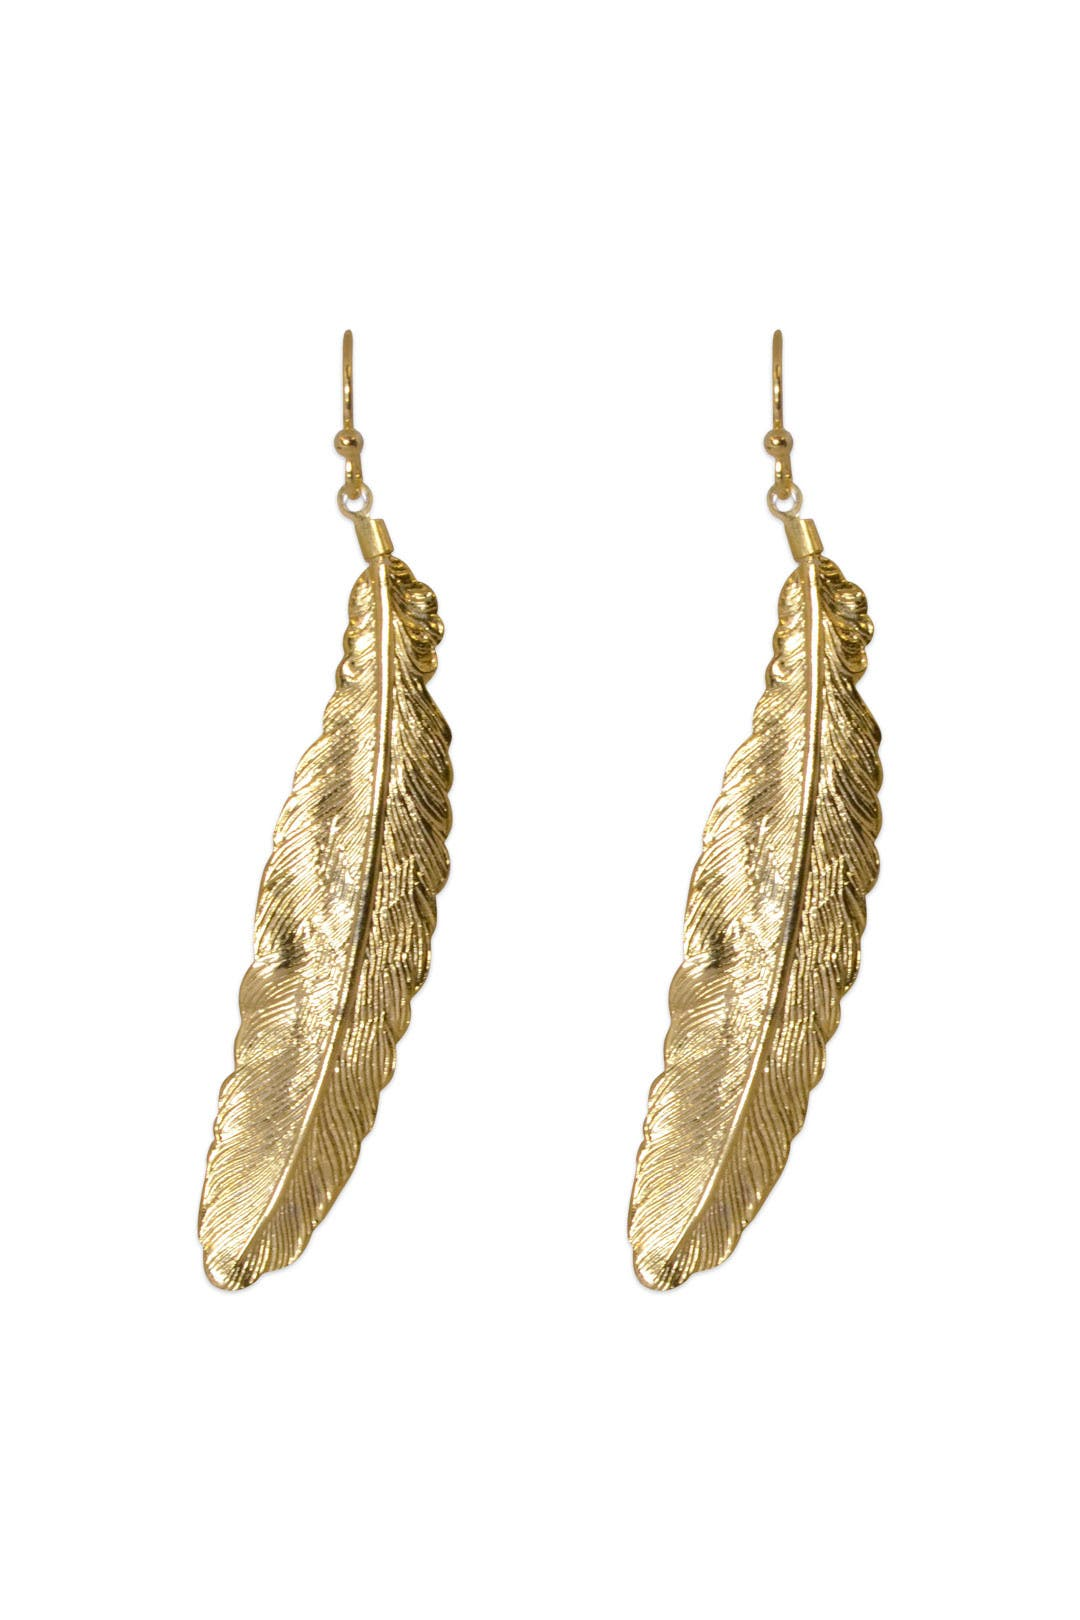 Cheyenne Earrings by AV Max